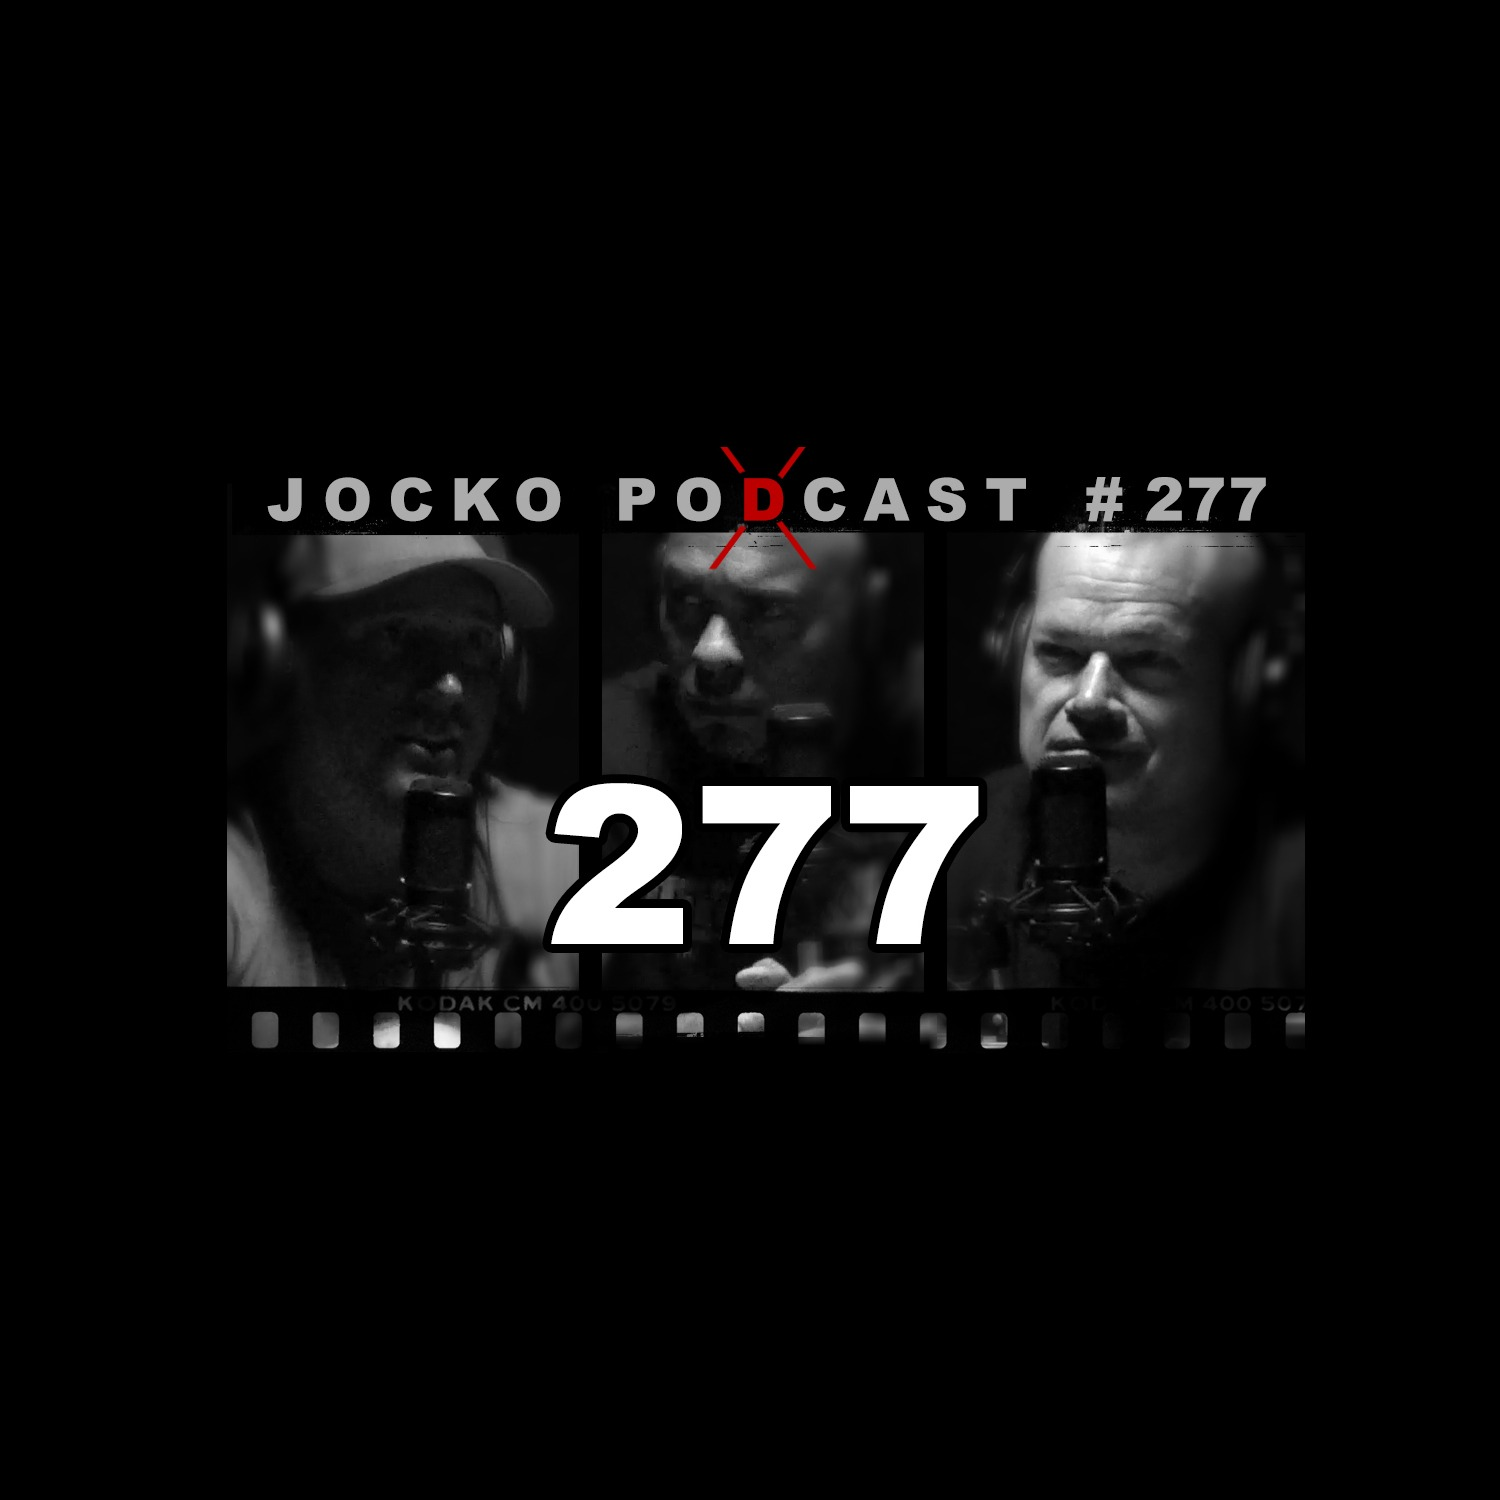 277: The War Continues at Home. Fighting Demons and Finding Peace. with Dakota Meyer.